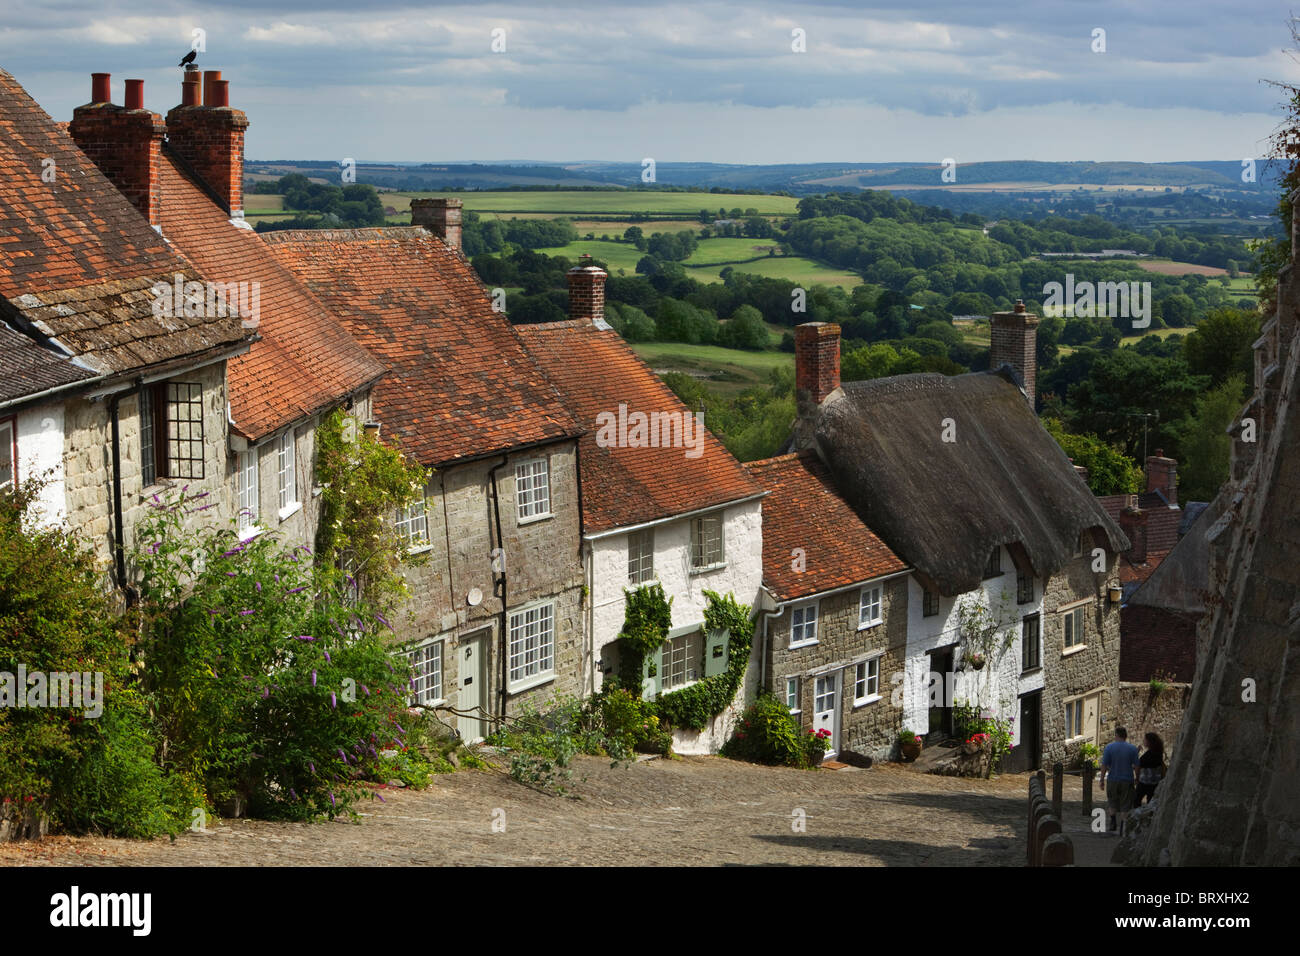 Gold Hill with traditional cottages - Stock Image